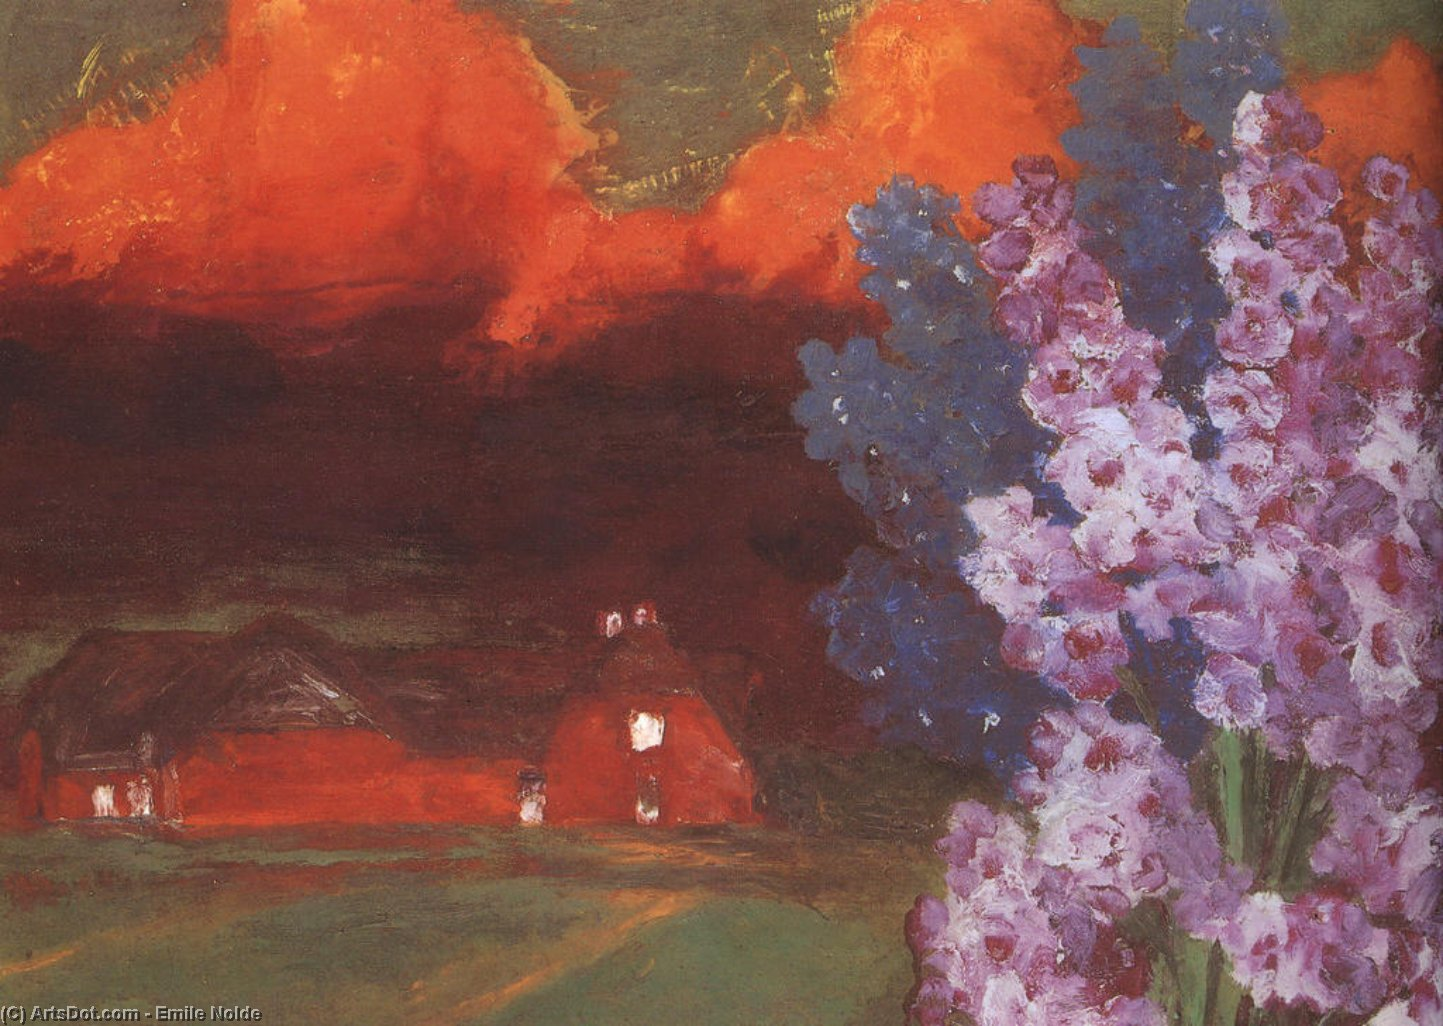 Muggy Evening, 1930 by Emile Nolde (1867-1956, Germany)